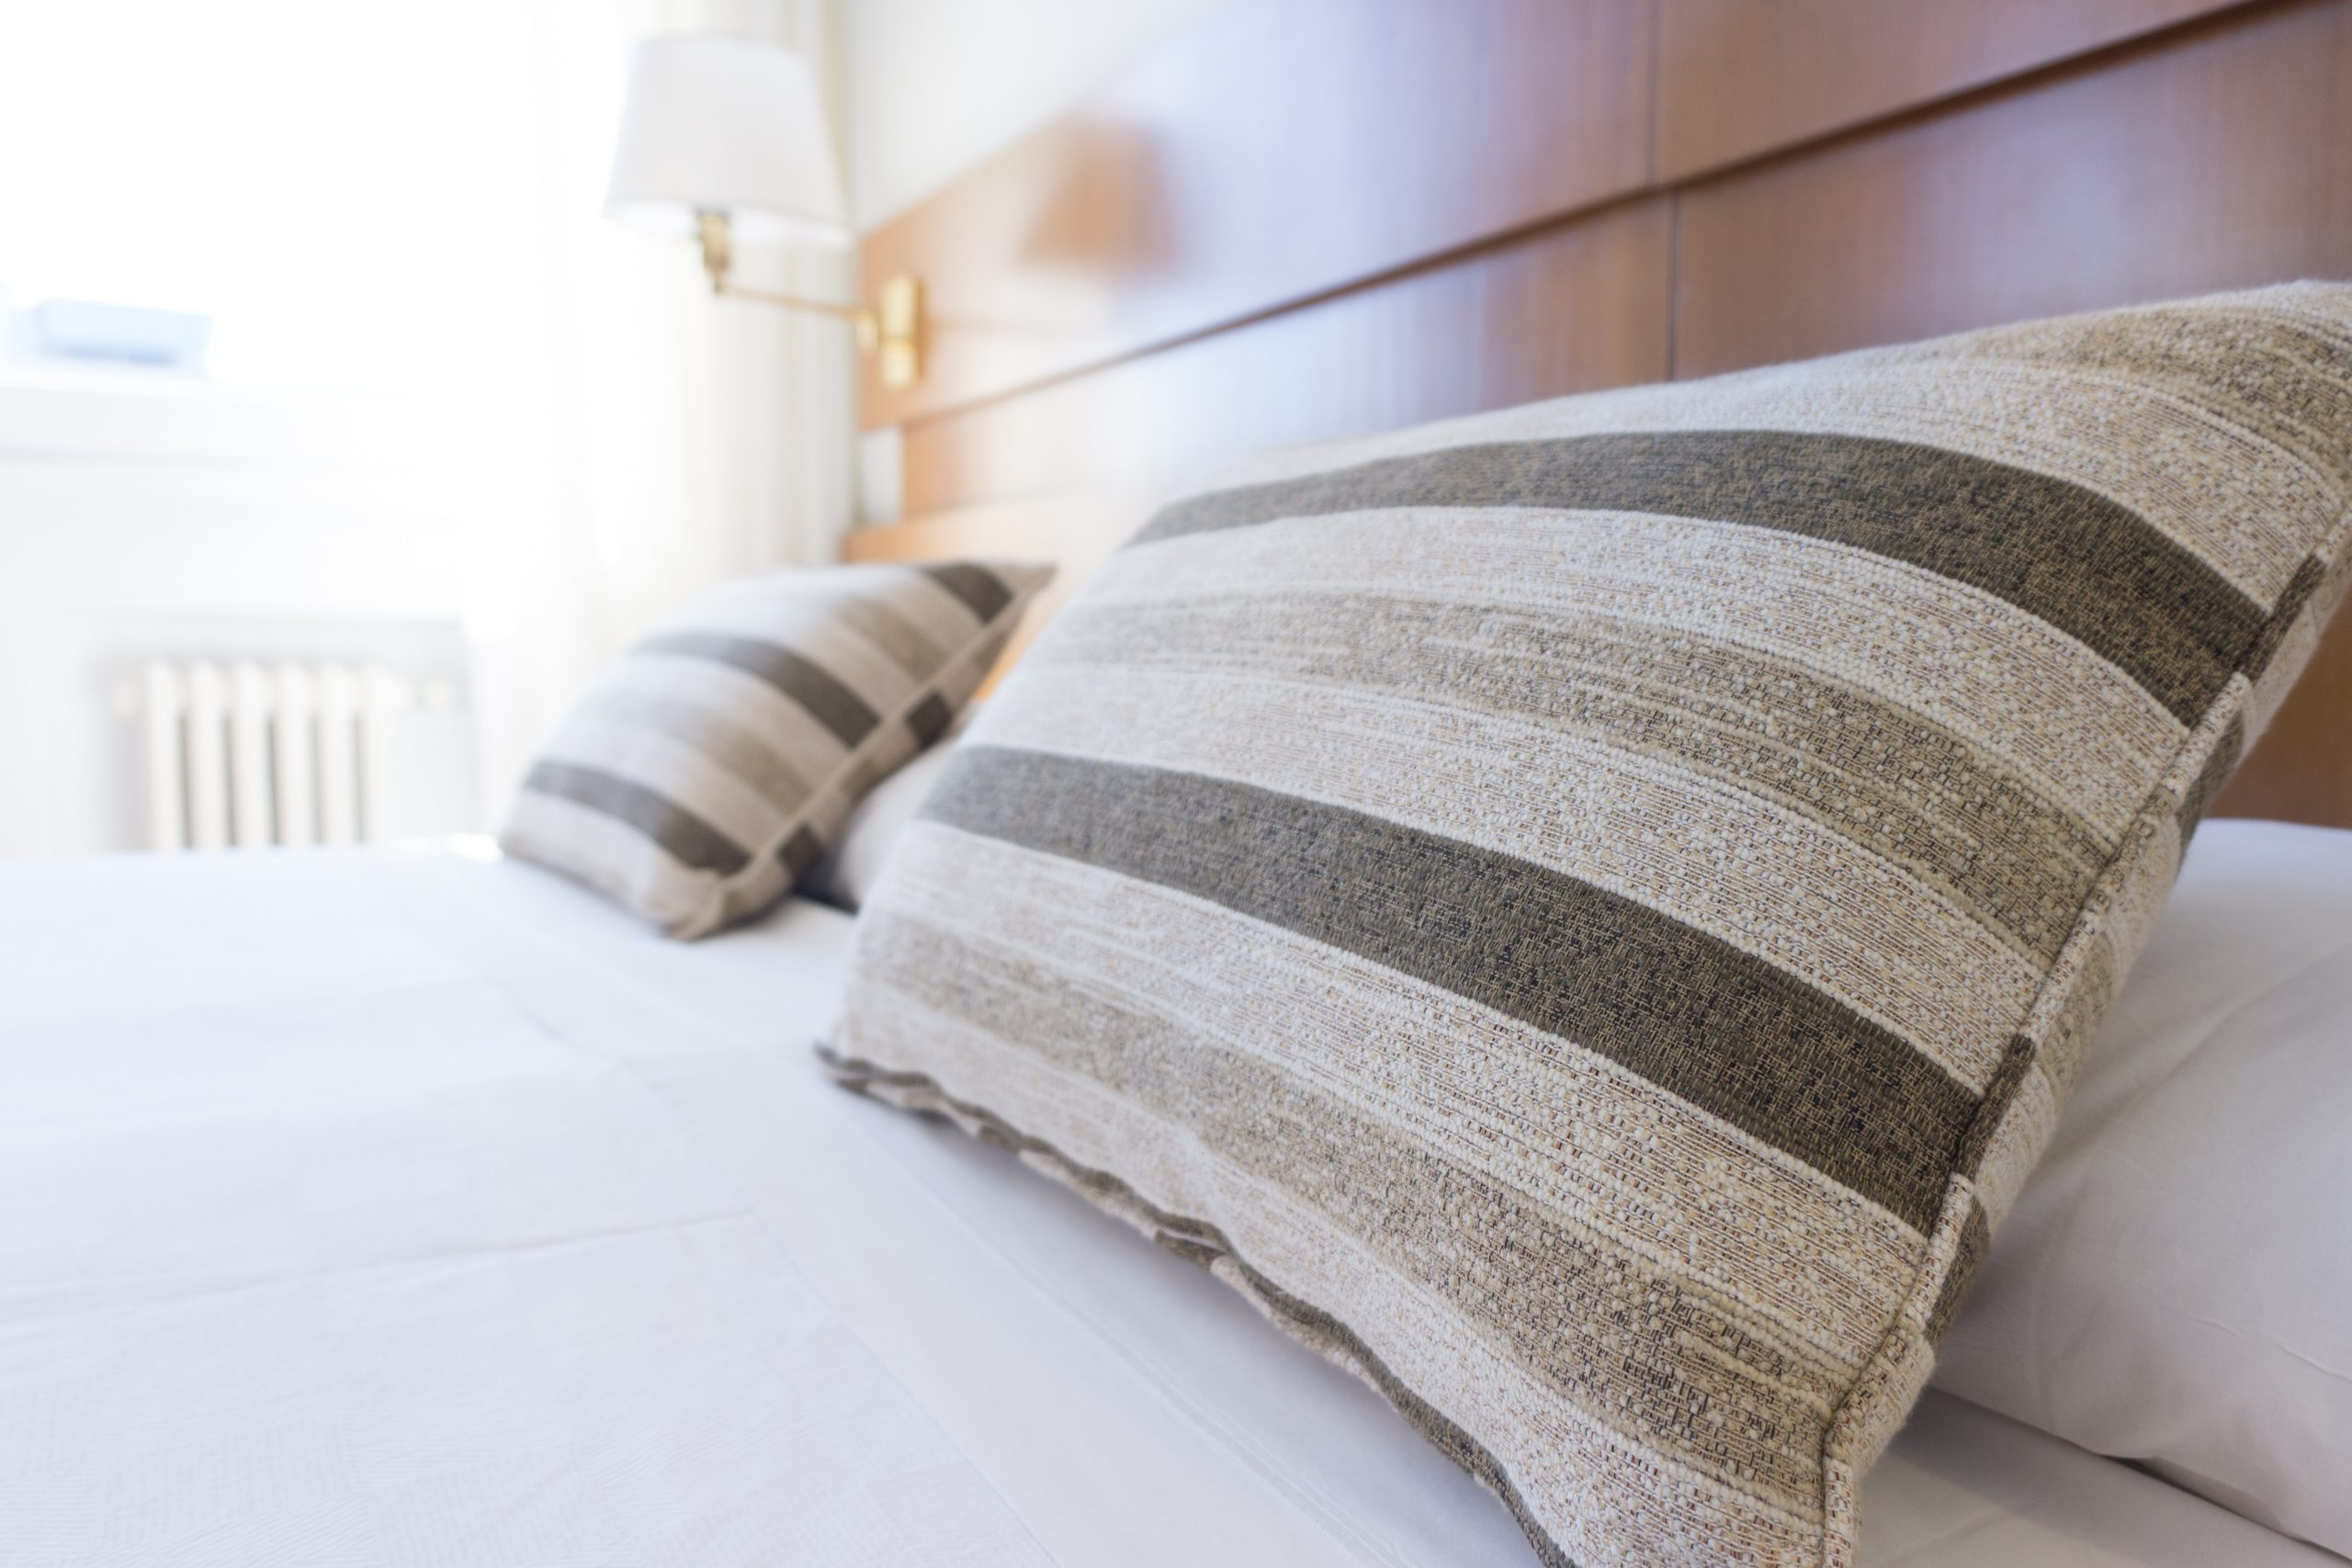 decorative pillows on a hotel bed